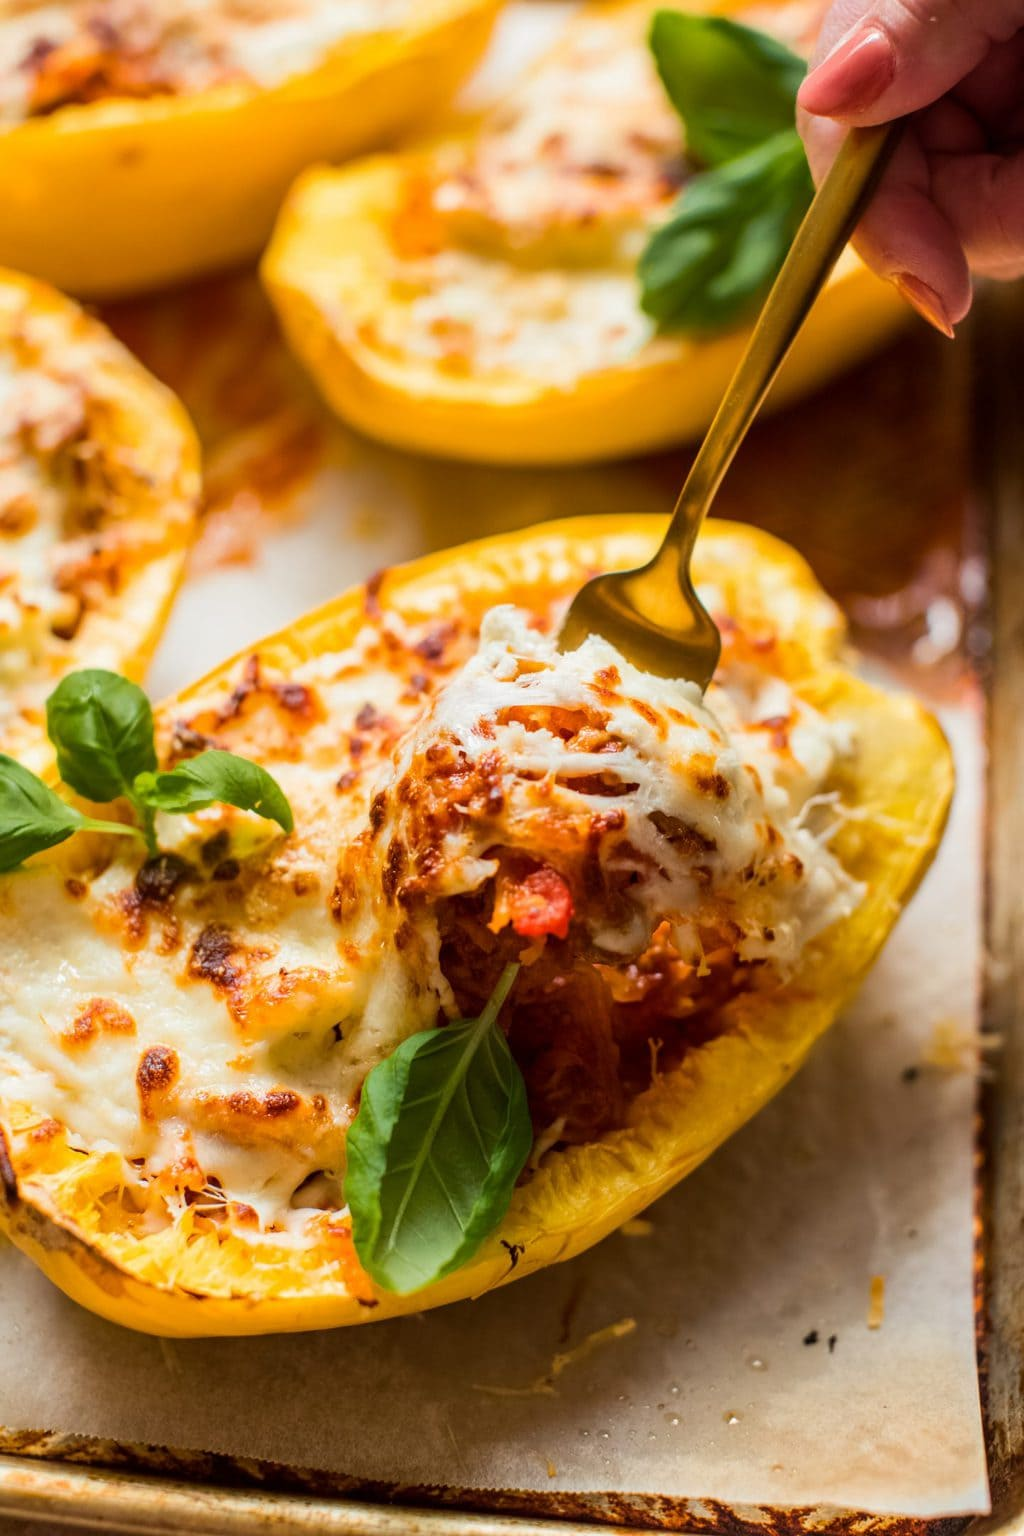 fork digging into spaghetti squash half filled with meat, sauce and cheese